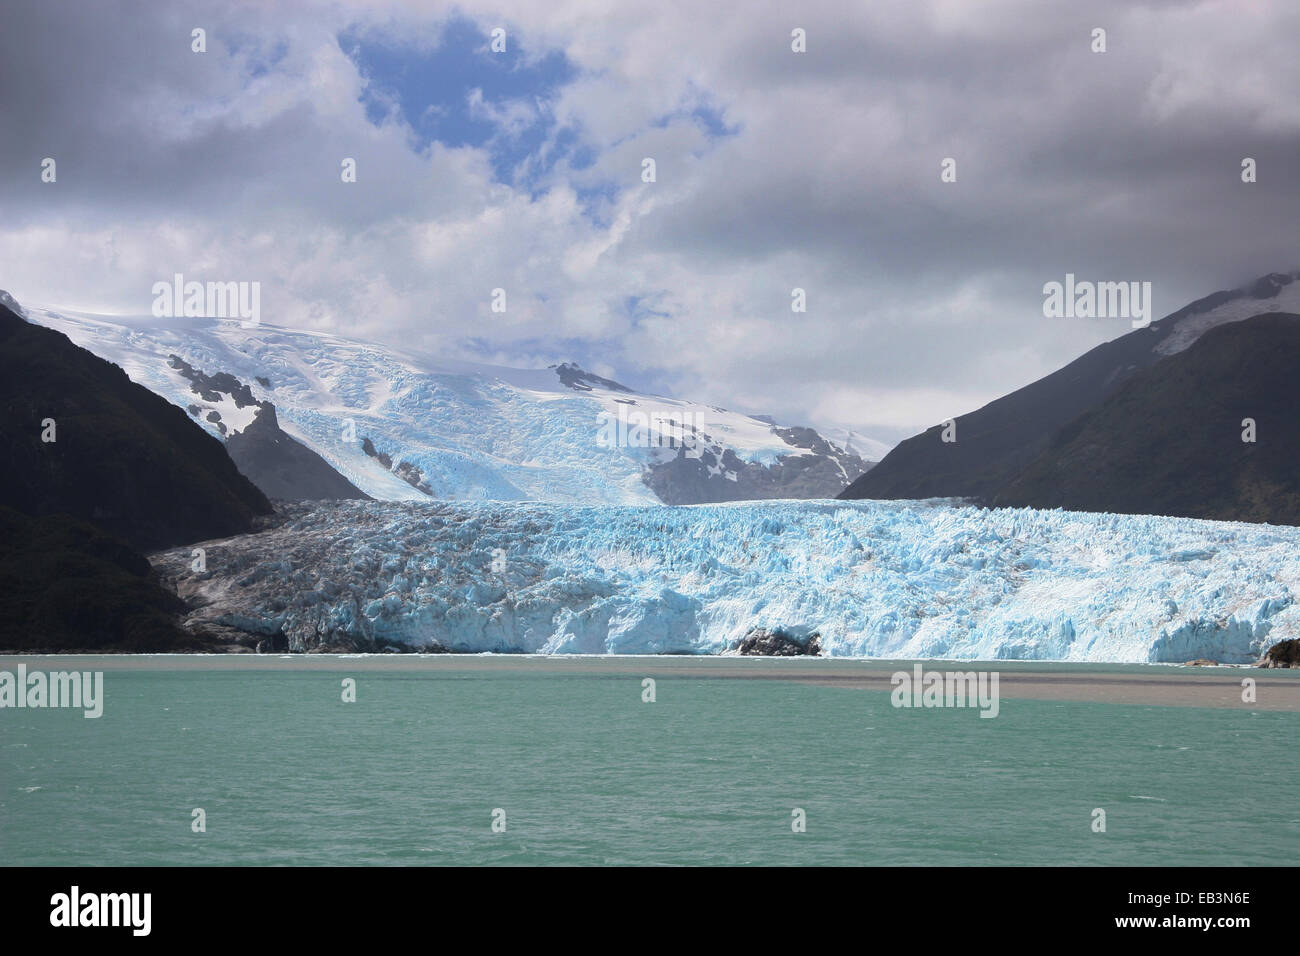 Amalia Glacier, also known as Skua Glacier, is a tidewater glacier located in Bernardo O'Higgins National Park, - Stock Image